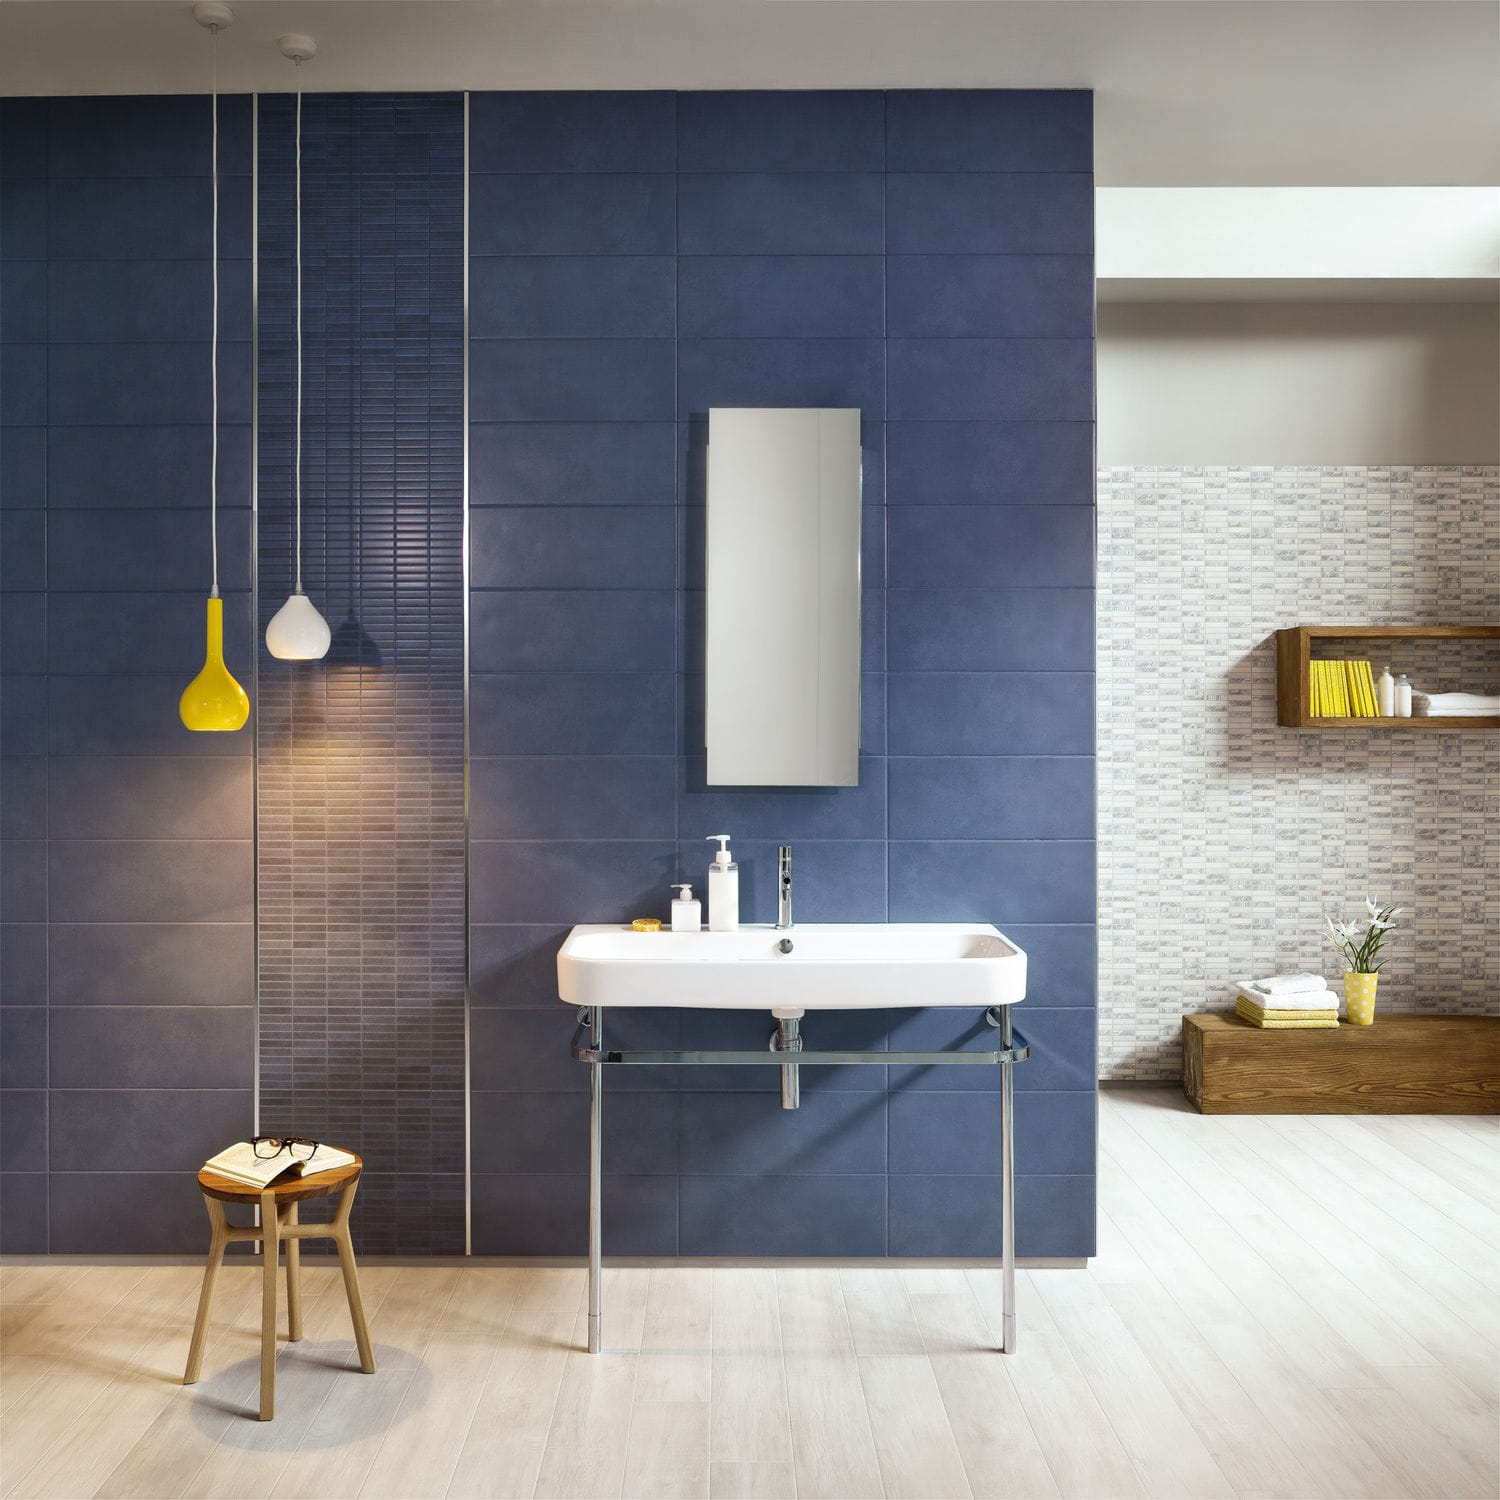 Bathroom tile / wall / porcelain stoneware / plain - SENSE : BLU ...